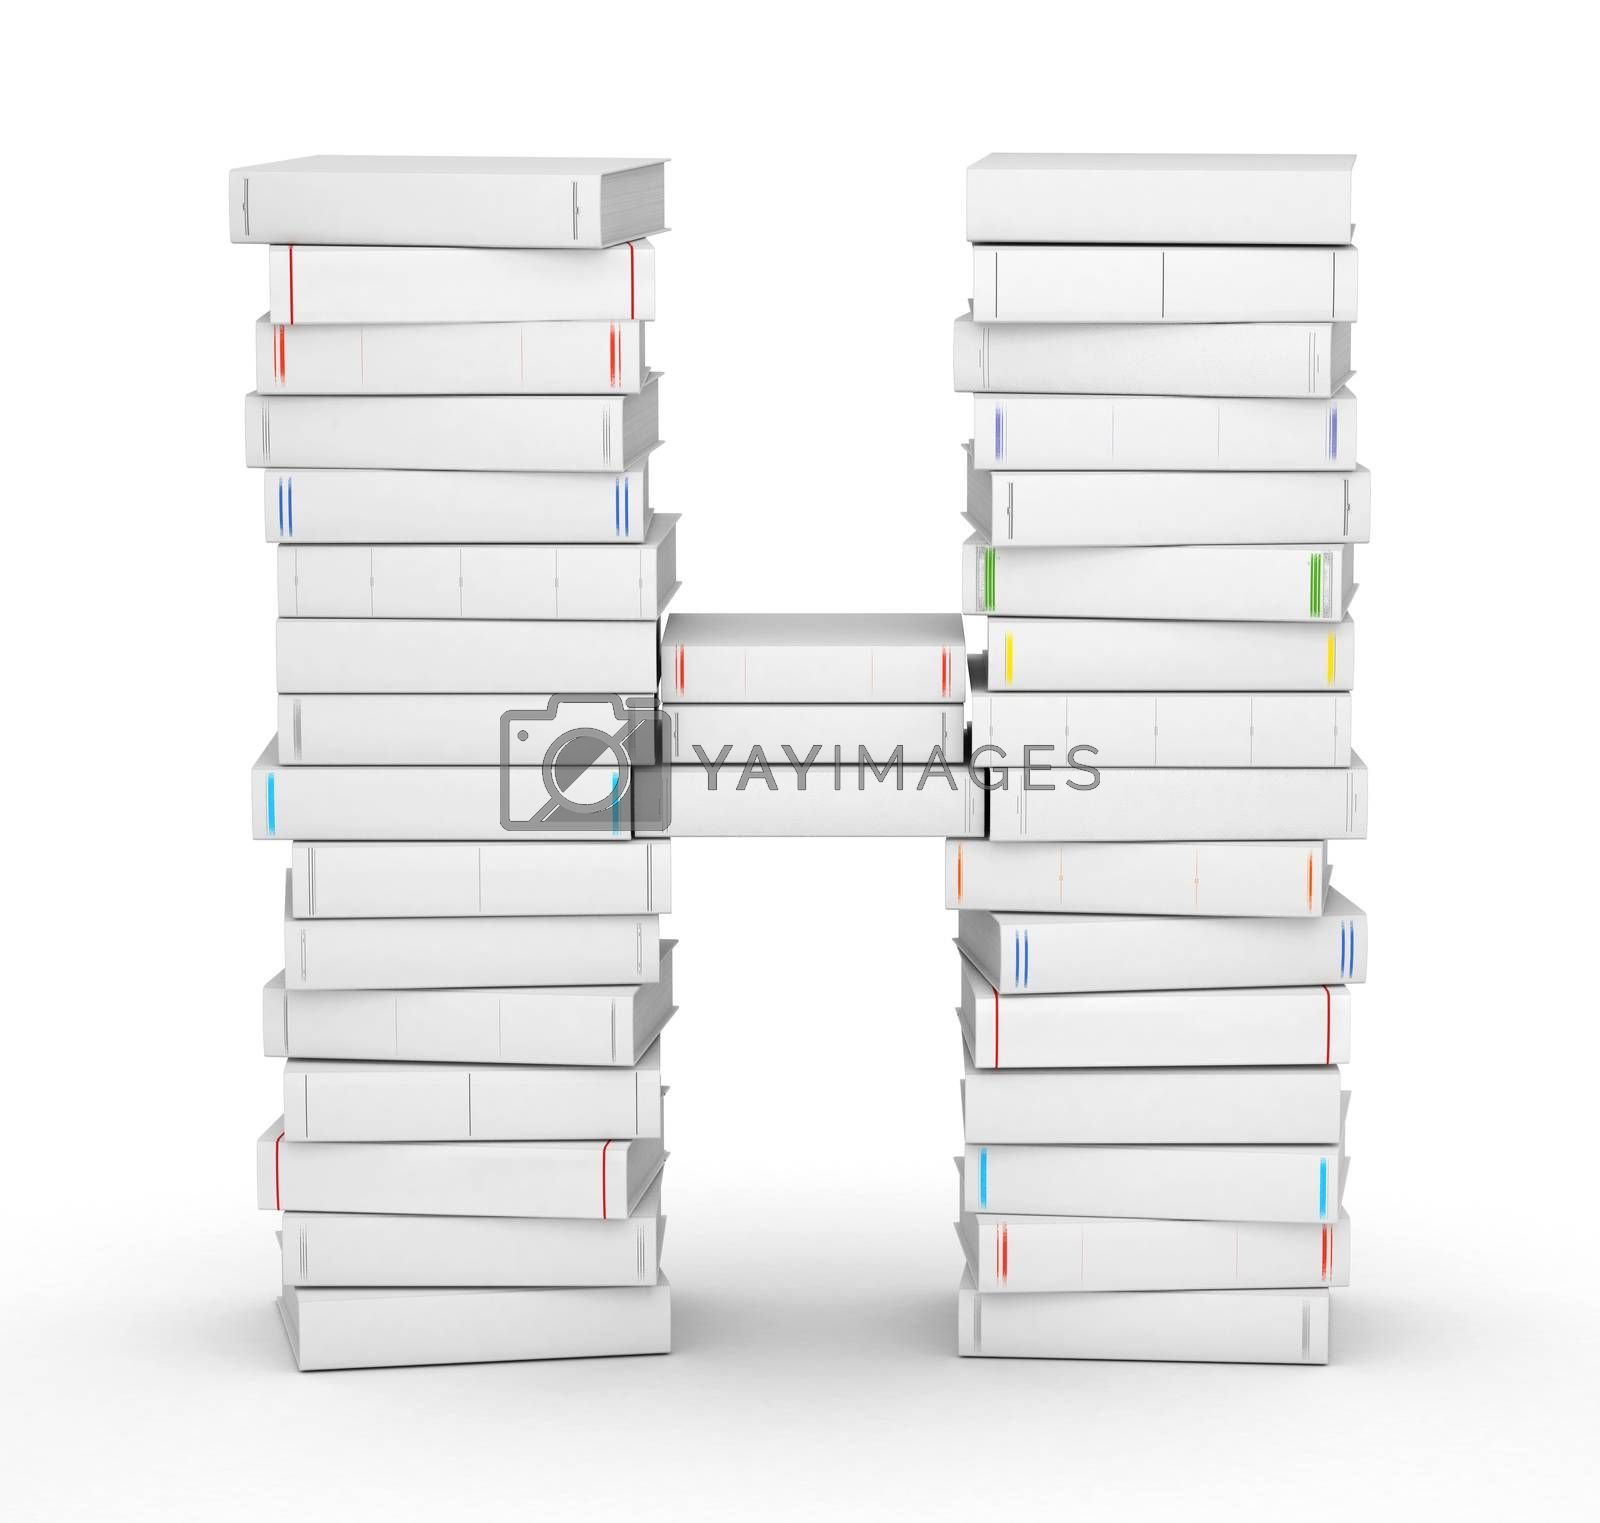 Royalty free image of Letter H, stacked from blank books by iunewind